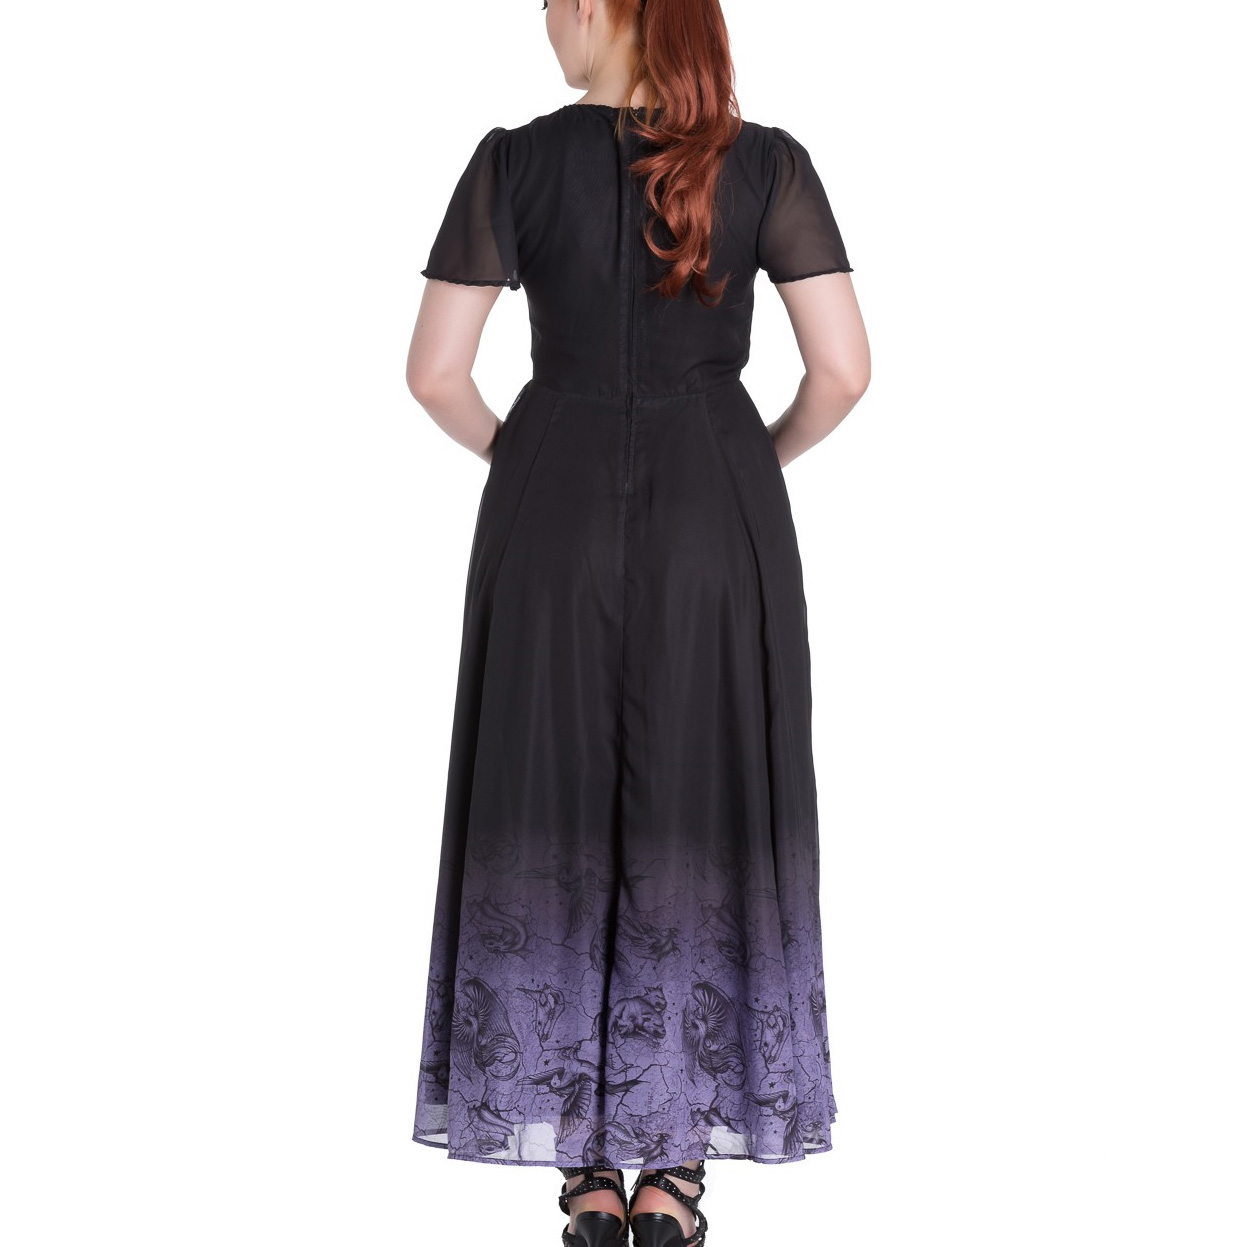 Hell-Bunny-Spin-Doctor-Goth-Maxi-Dress-EVADINE-Purple-Black-All-Sizes thumbnail 8